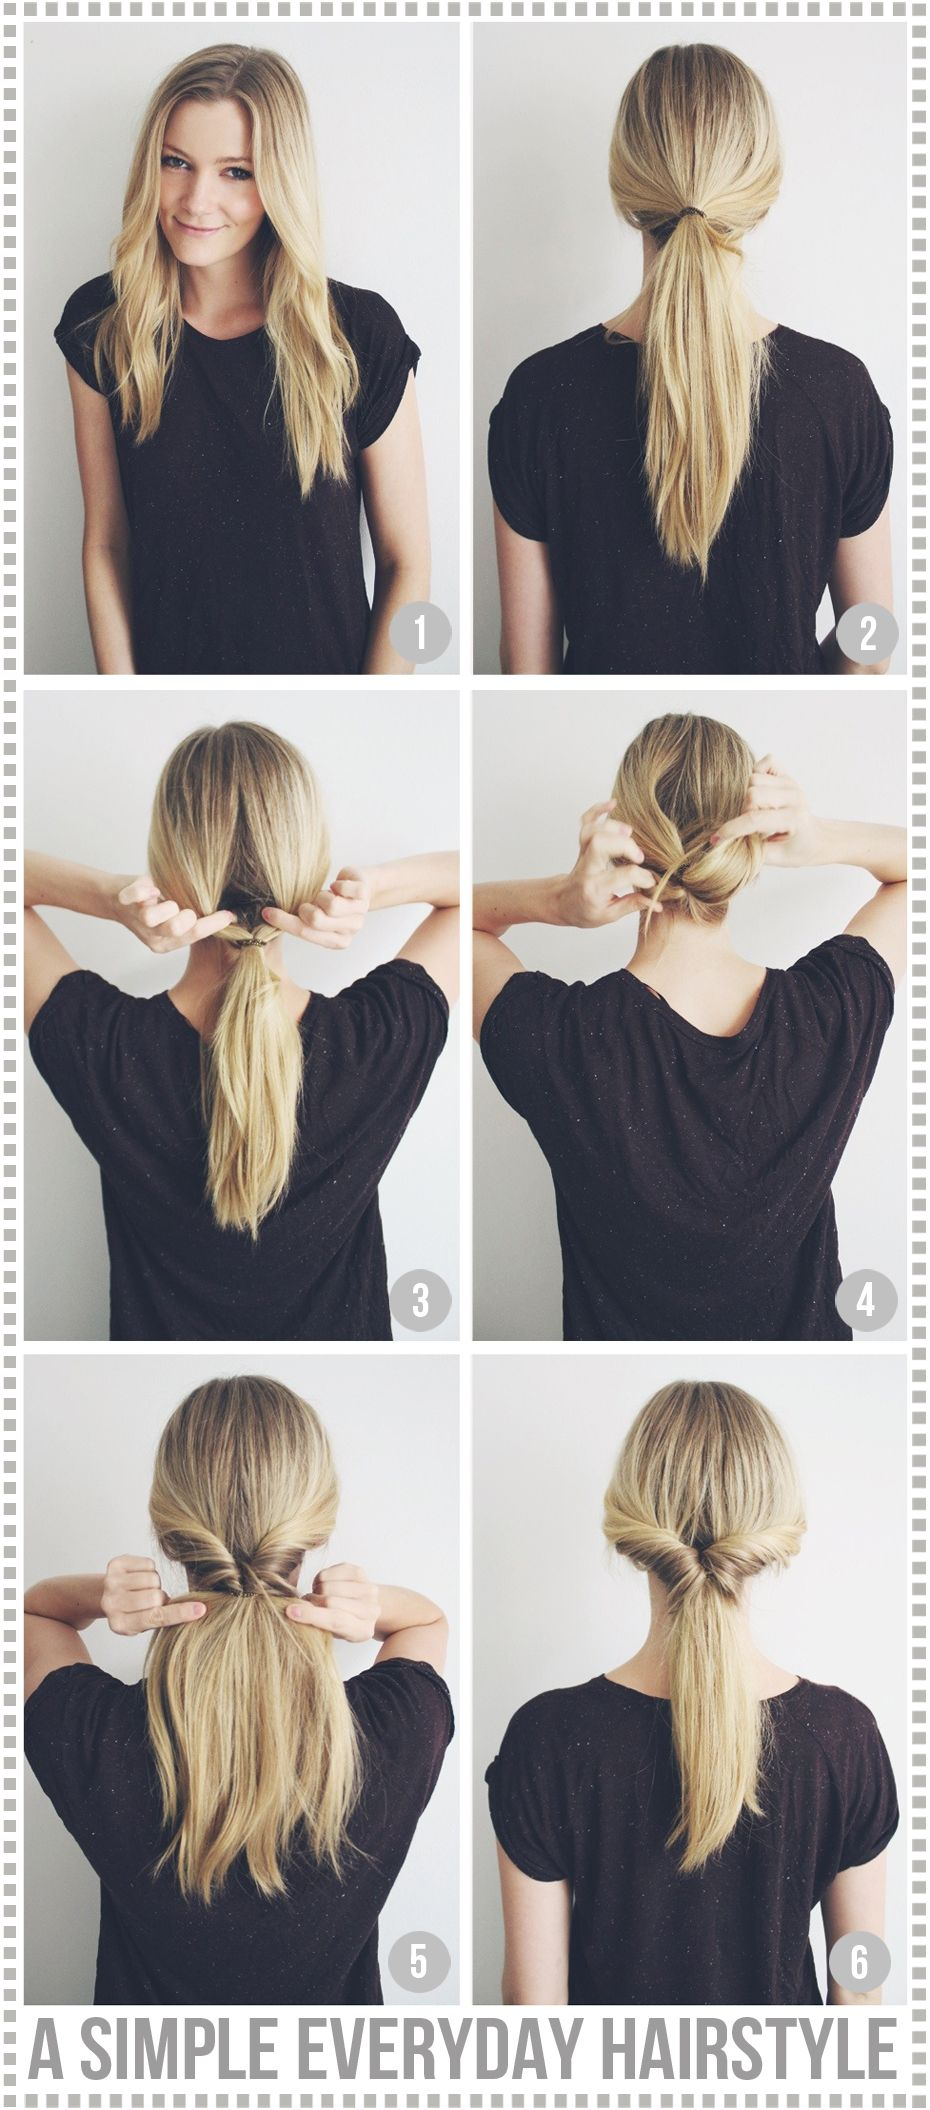 DIY Cupcake Holders | Simple everyday hairstyles, Everyday ...